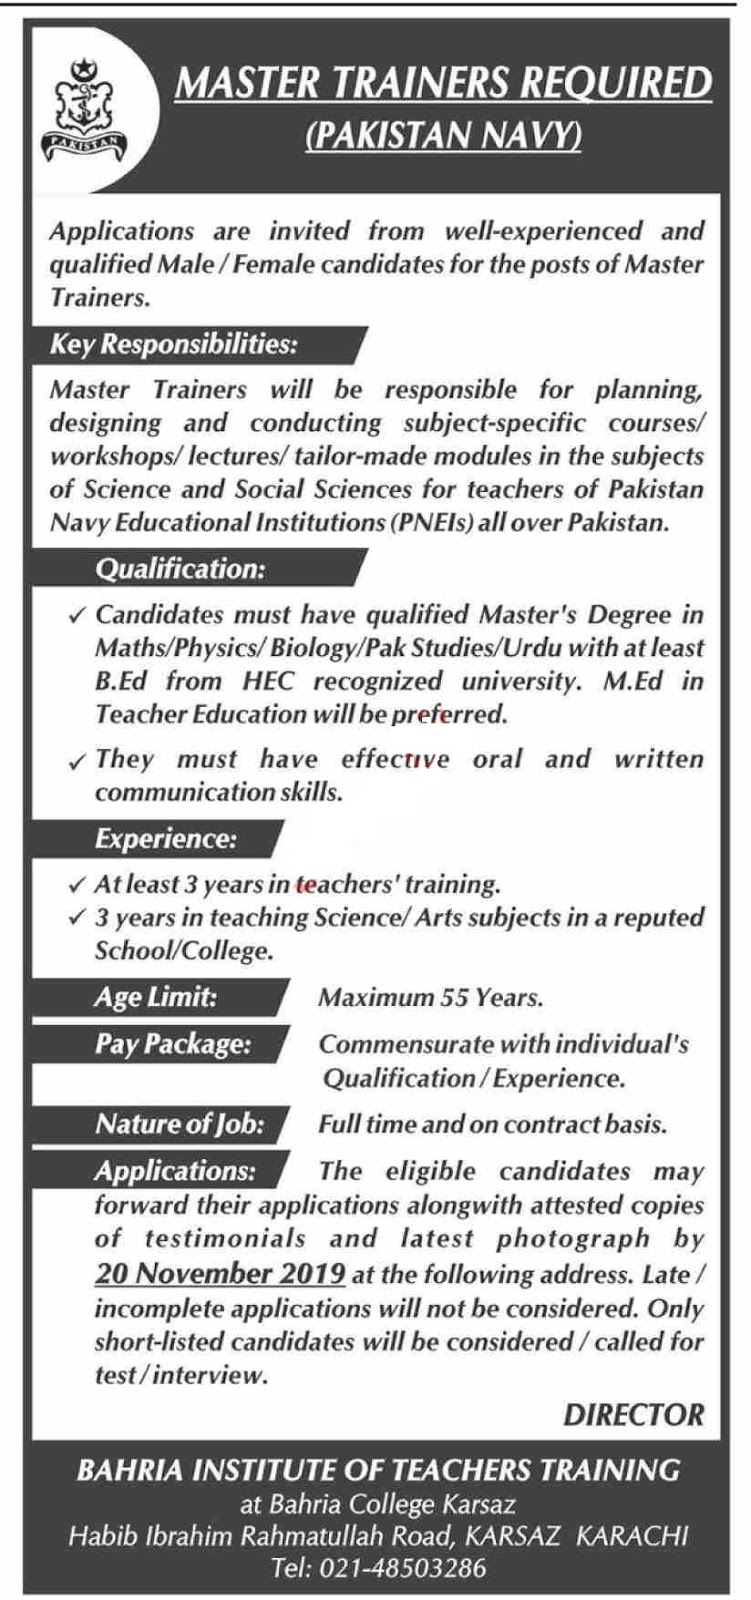 Pakistan Navy Jobs For Master Trainers in Karachi